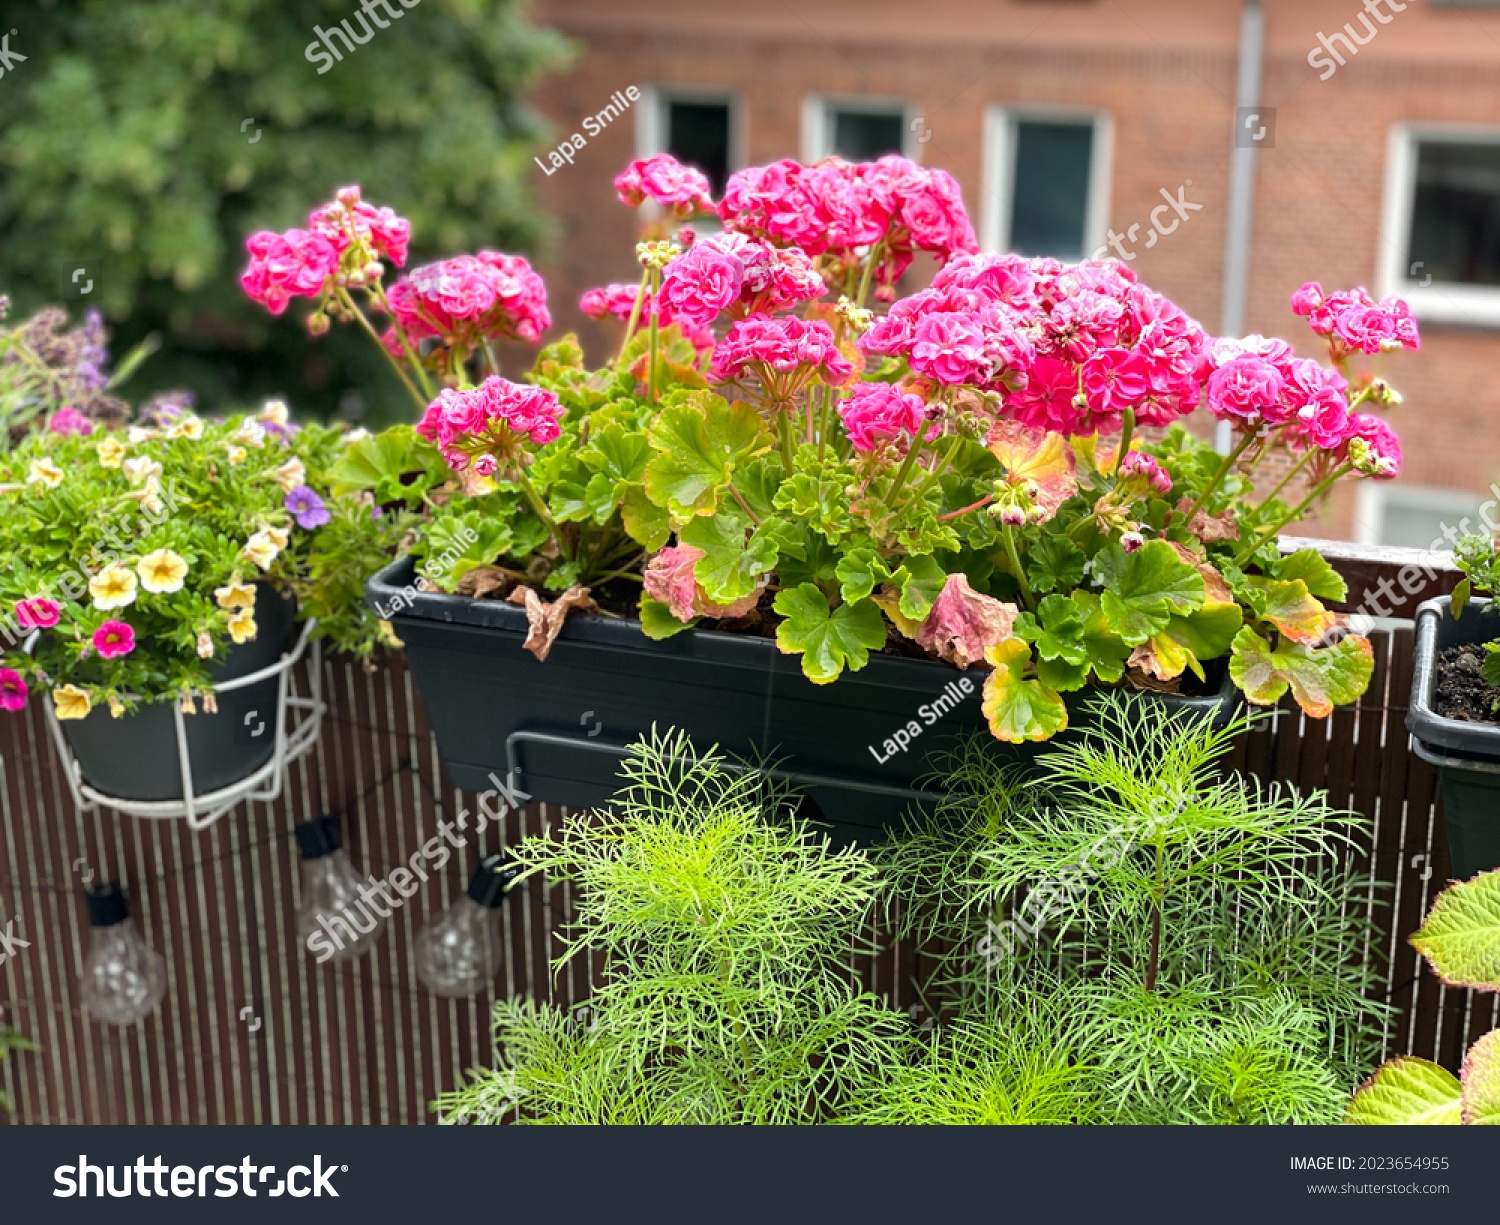 Blooming vibrant pink geranium pelargonium flowers in decorative flower pot hanging on a balcony fence, spring summer balcony garden with blooming flowers #2023654955